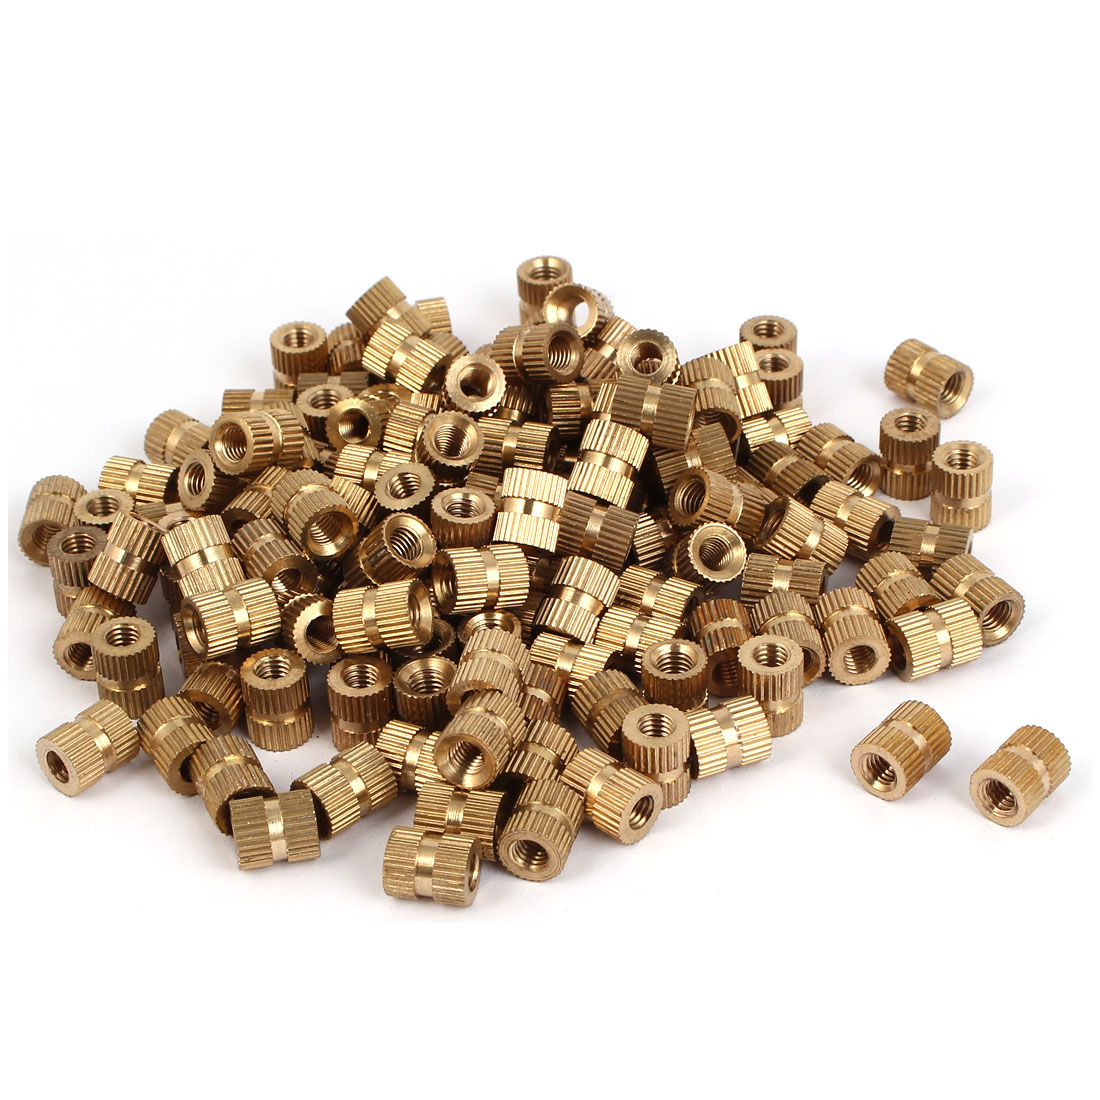 M5 x 10mm Brass Cylinder Injection Molding Knurled Threaded Insert Nuts 200PCS